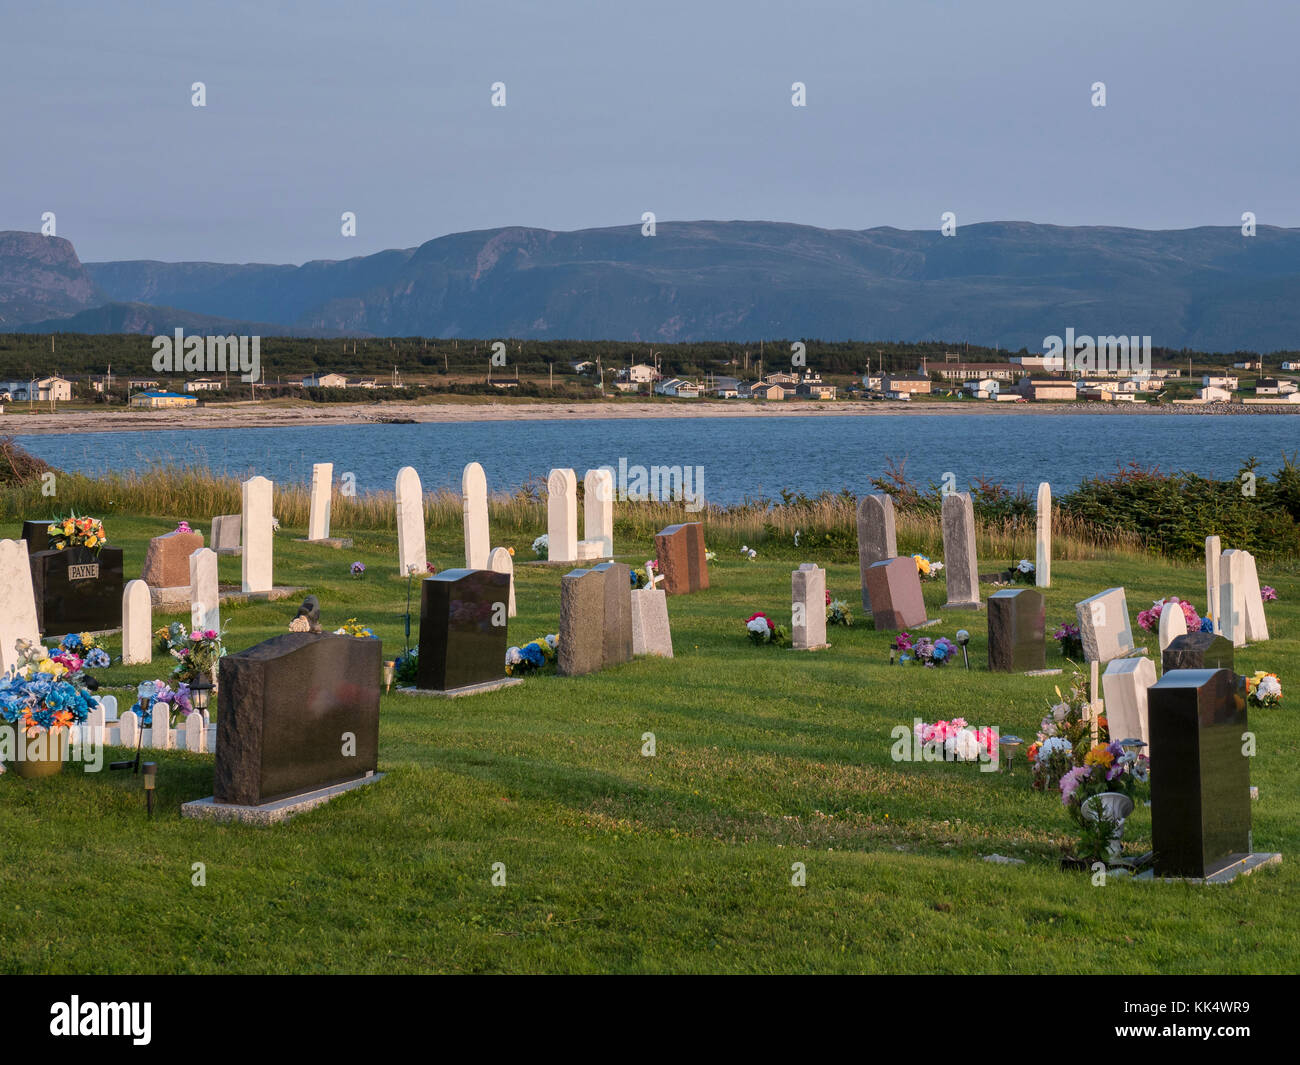 Anglican Cemetery with town in the background, Cow Head village, Gros Morne National Park, Newfoundland, Canada. - Stock Image